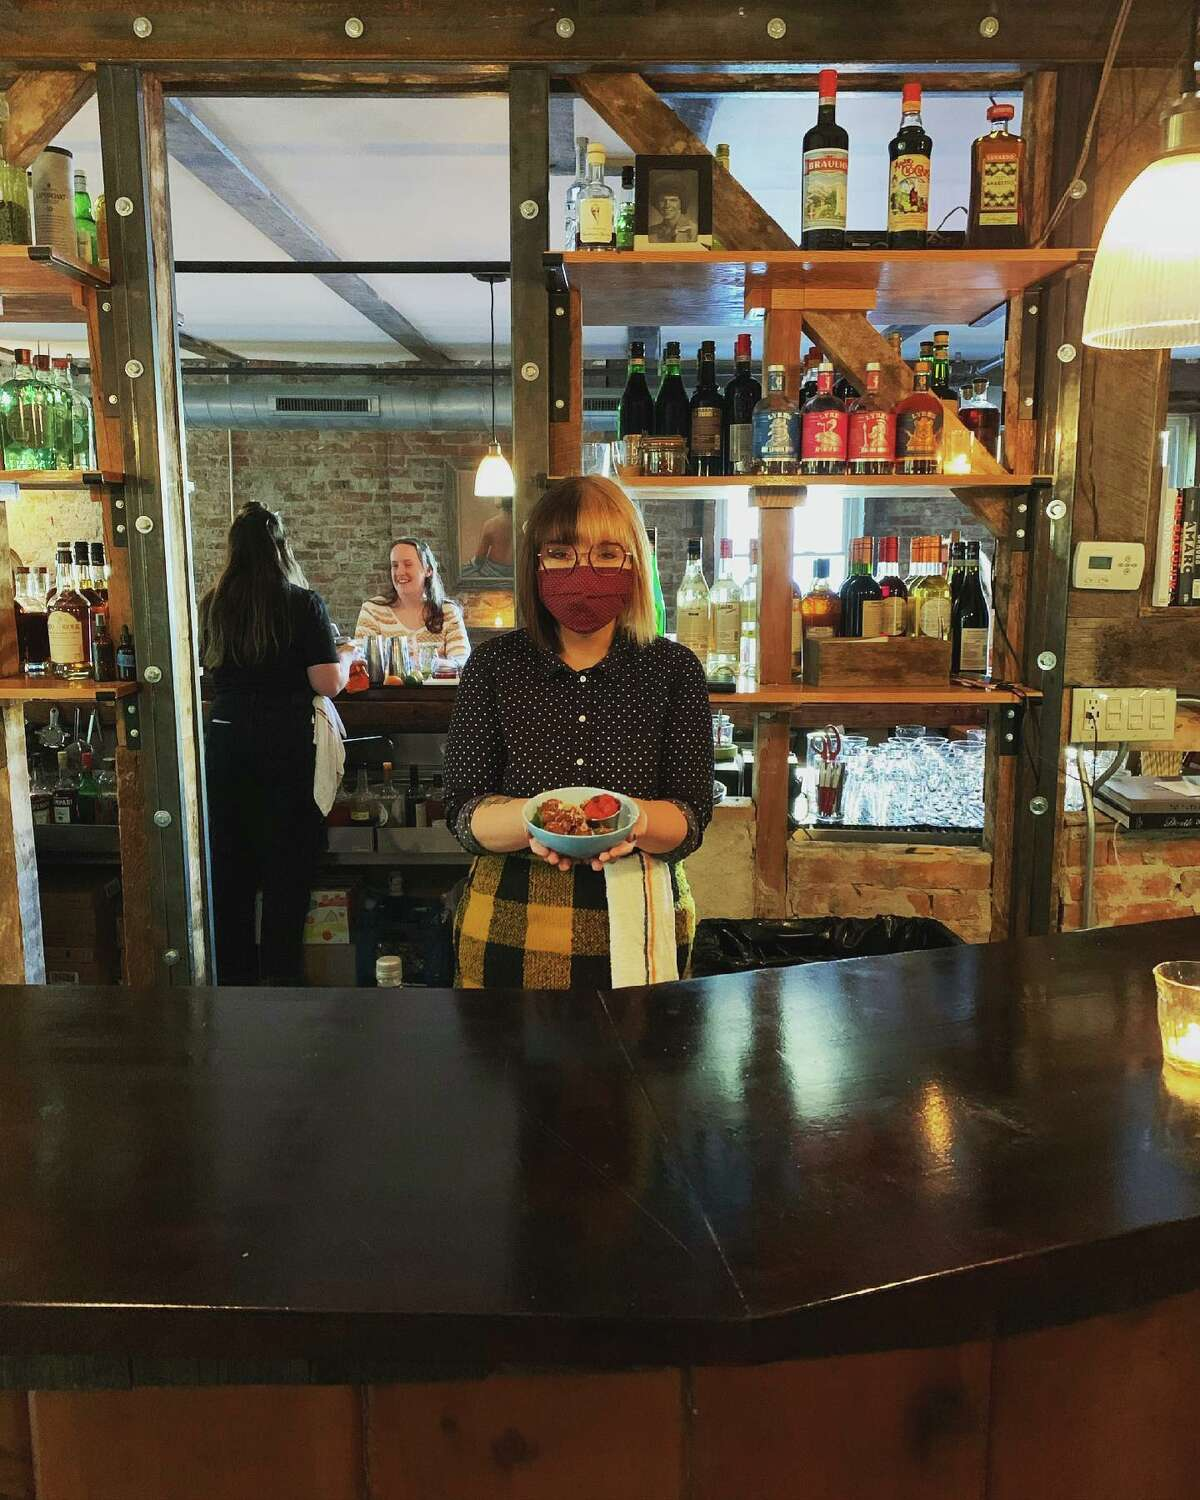 Marisa Cavanugh at the Tavern Bar, located above Donna's Italian restaurant in Troy, owned by Clark House Hospitality. The company began requiring all staff to wear masks again starting July 28. (Provided photo.)